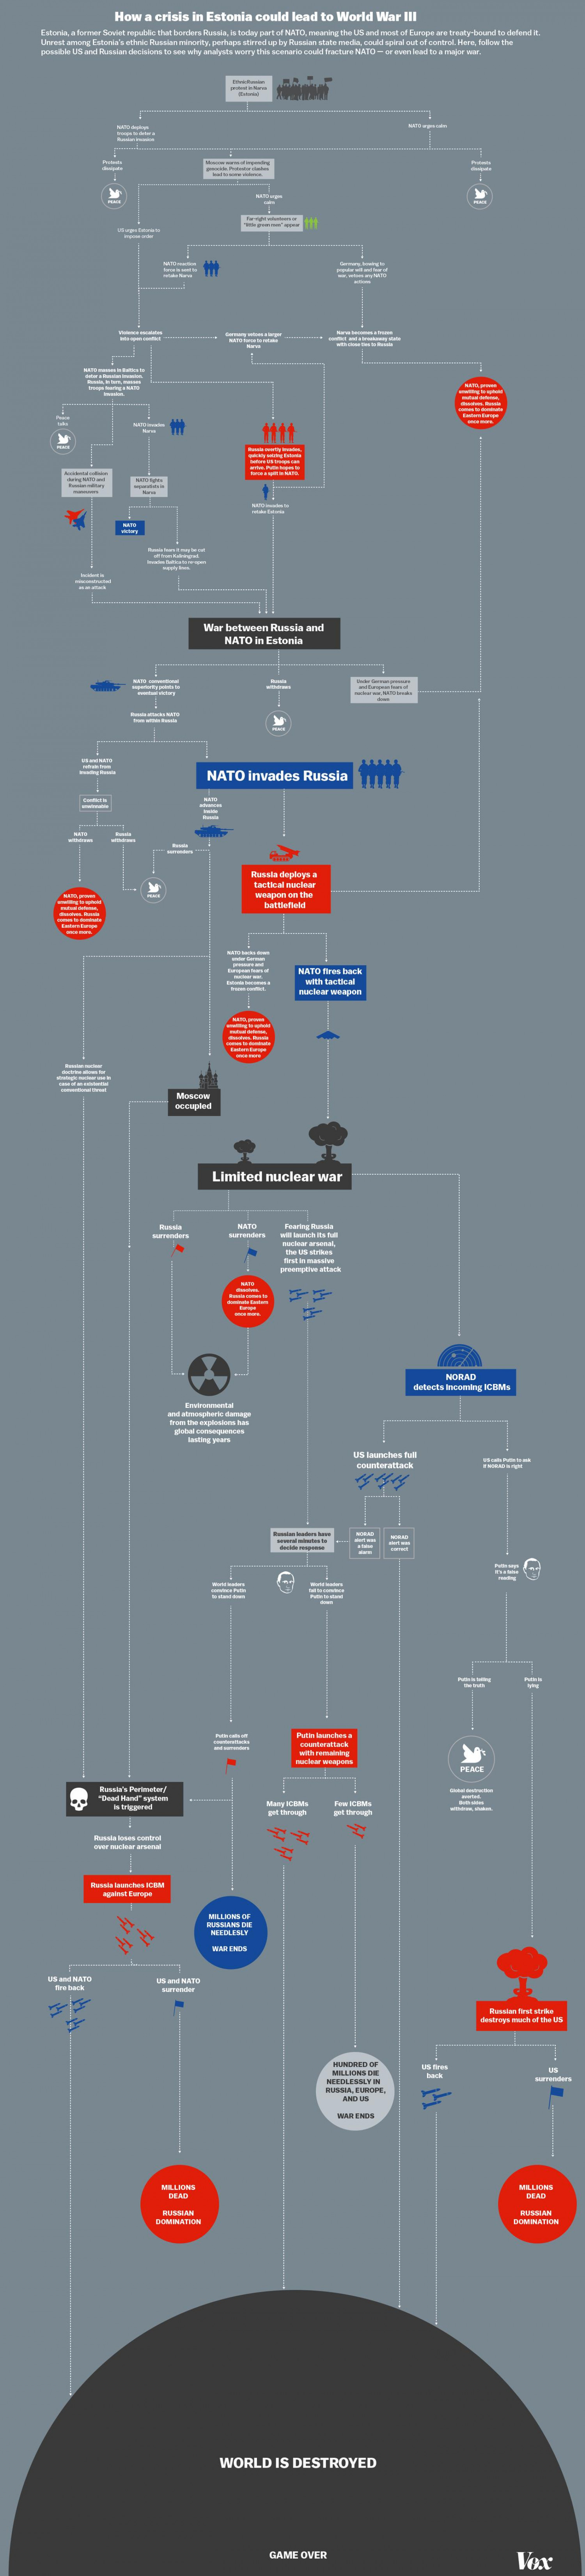 How World War 3 Could Destroy The Planet Infographic